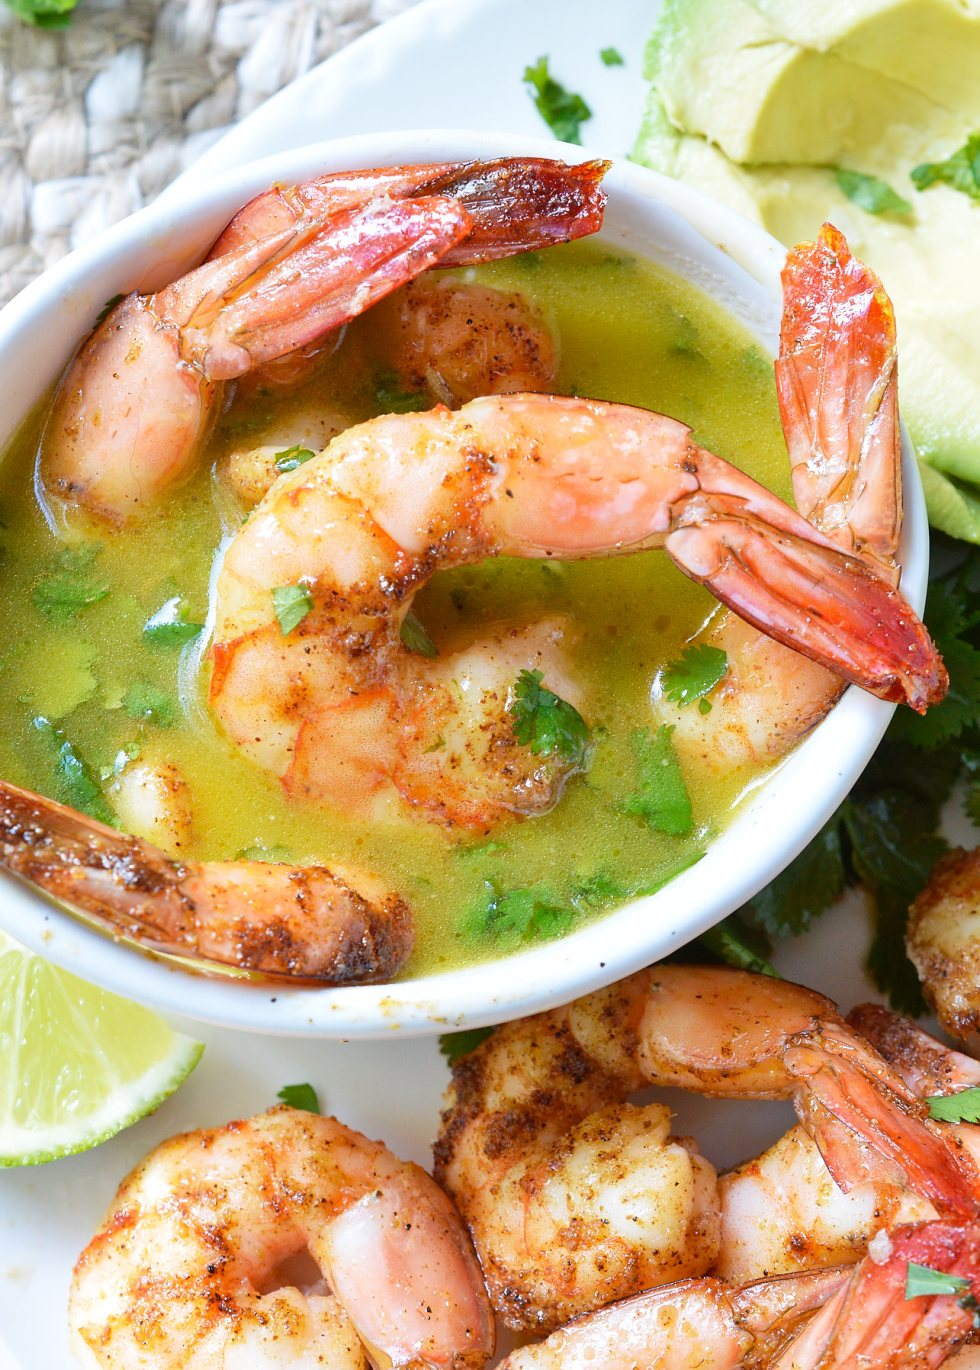 For punch in the face flavor, make these Cilantro Lime Spicy Baked Shrimp! This Whole30 compliant recipe starts with shrimp covered in spices, baked to perfection then served with a fresh cilantro lime dip. Perfect for a healthy lunch, dinner, appetizer or a snack! #whole30recipes #paleodiet #glutenfree #dairyfree #shrimprecipe